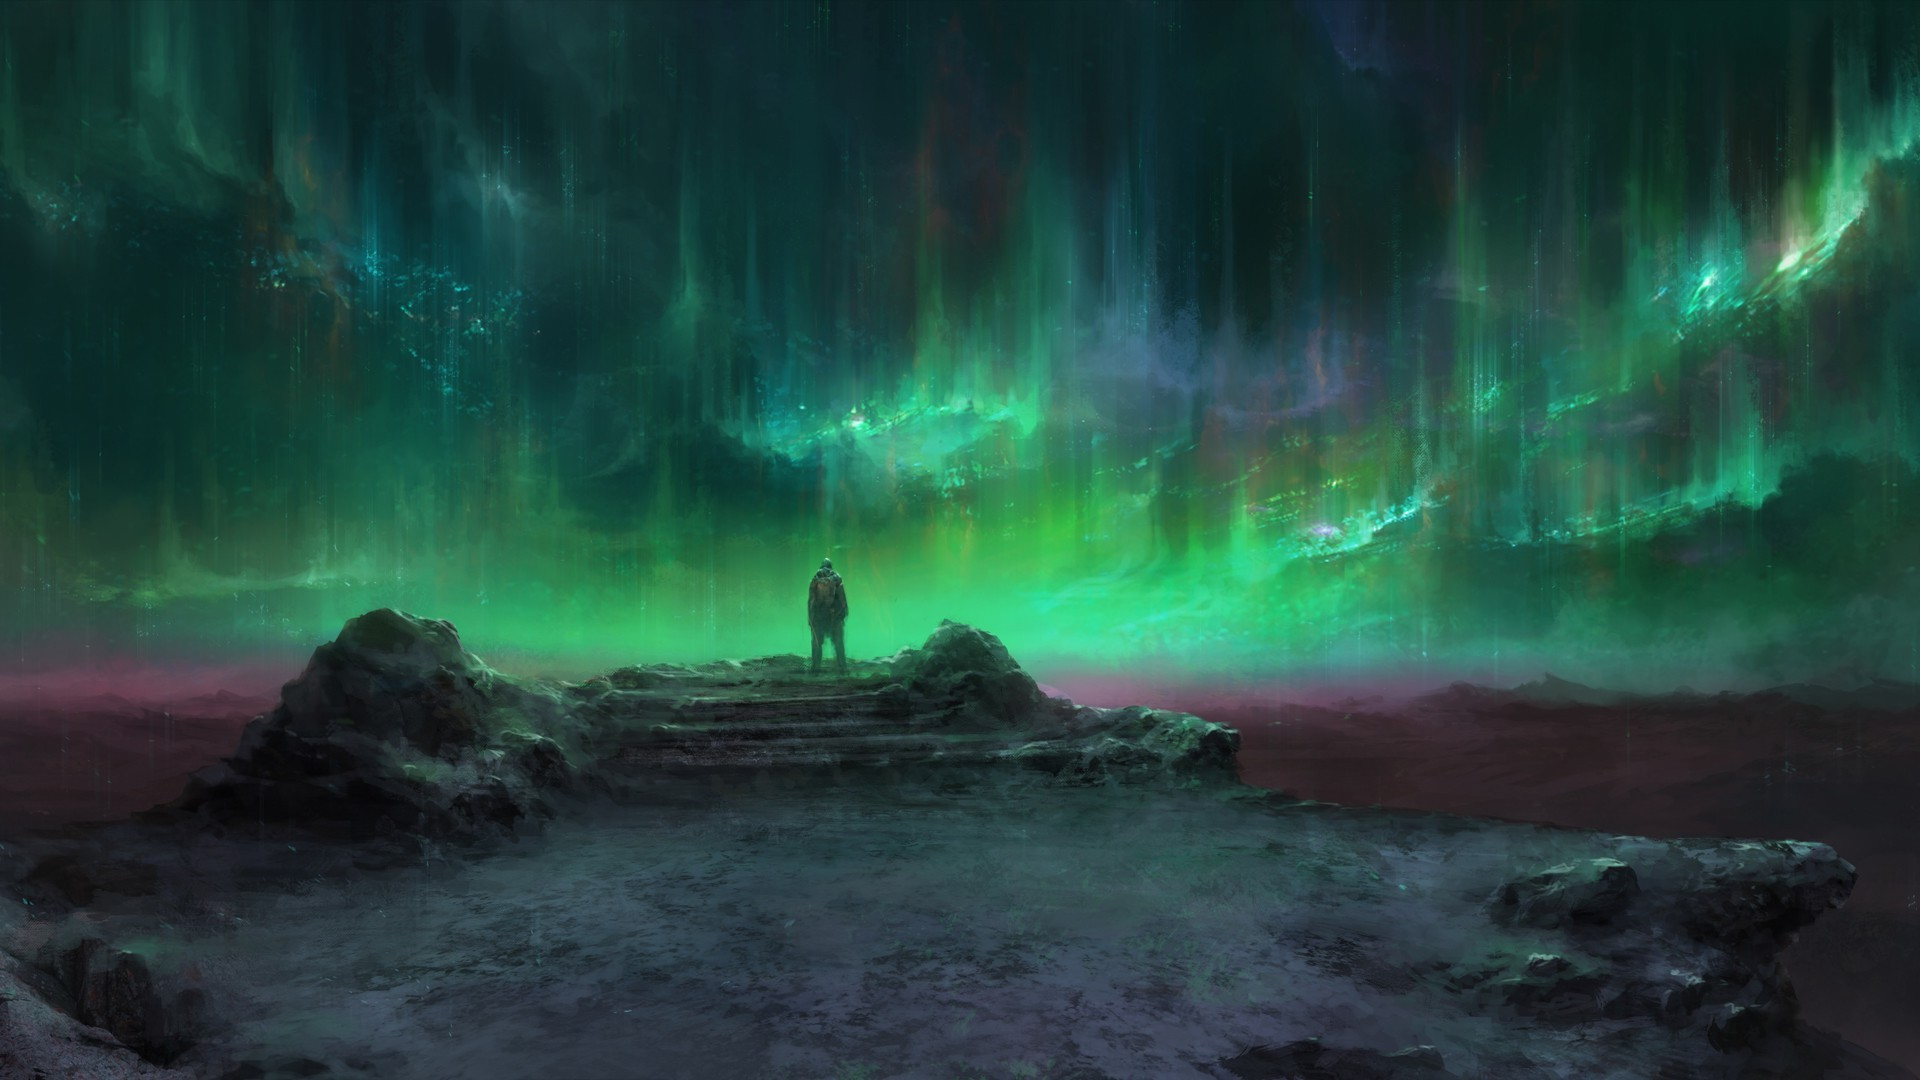 Anime Girls Wallpaper 4k Aurorae Green Landscape Fantasy Art Wallpapers Hd